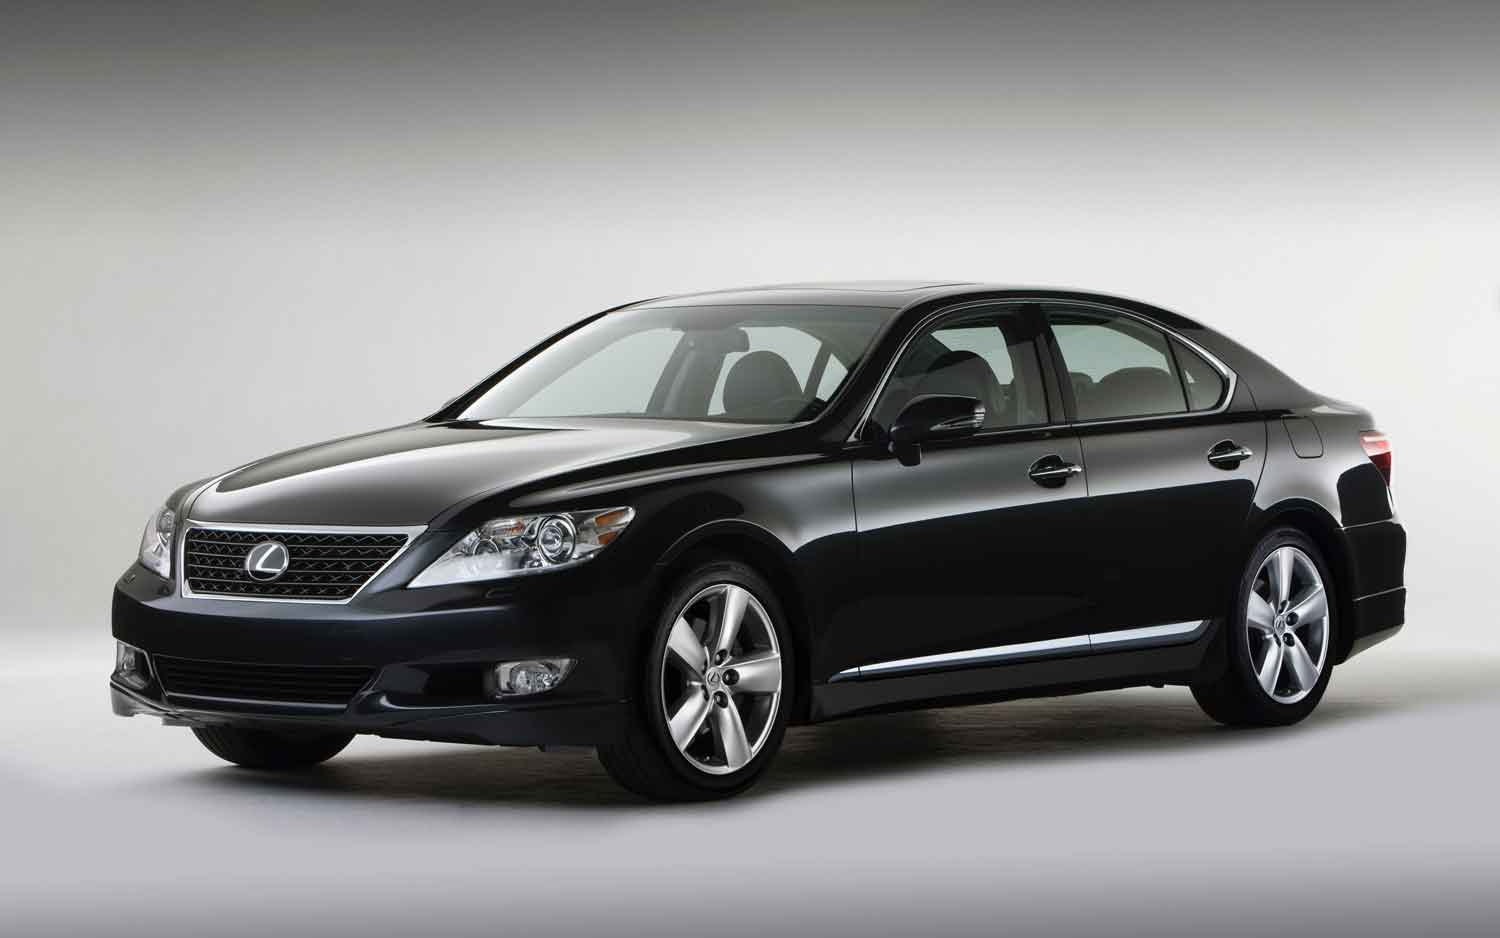 2012 lexus ls 460 photos informations articles. Black Bedroom Furniture Sets. Home Design Ideas